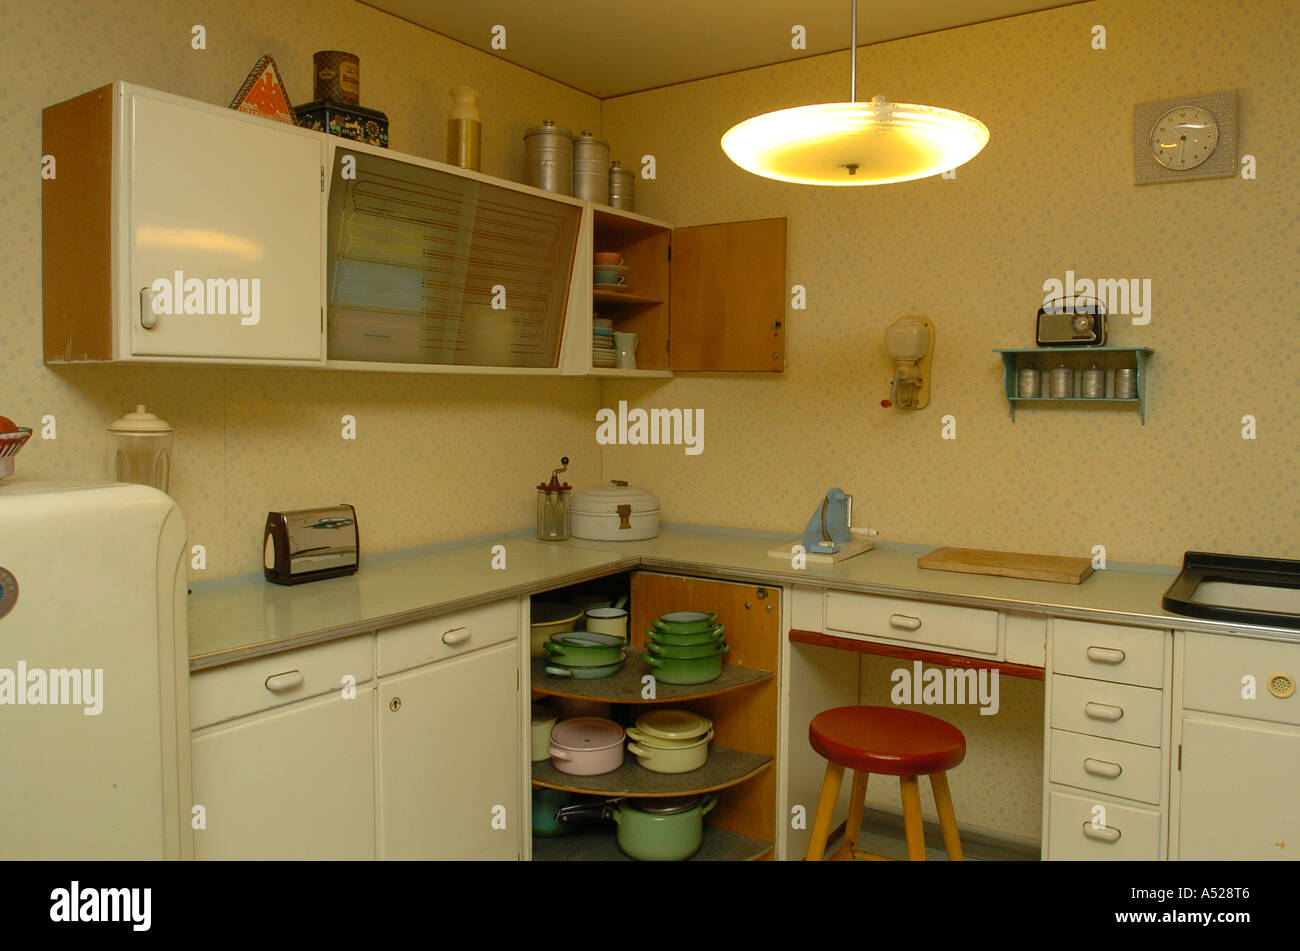 Apartment In 50s Style Kitchen